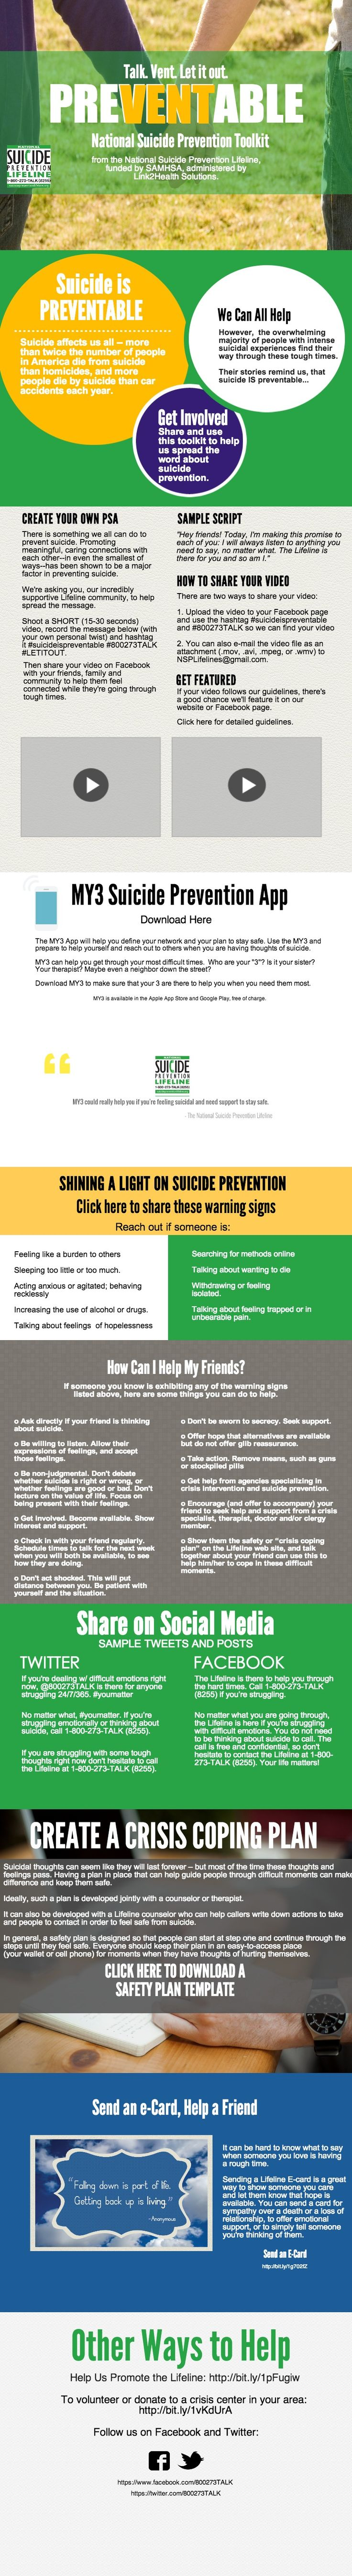 87 best preventing suicide and treating mental illness images on